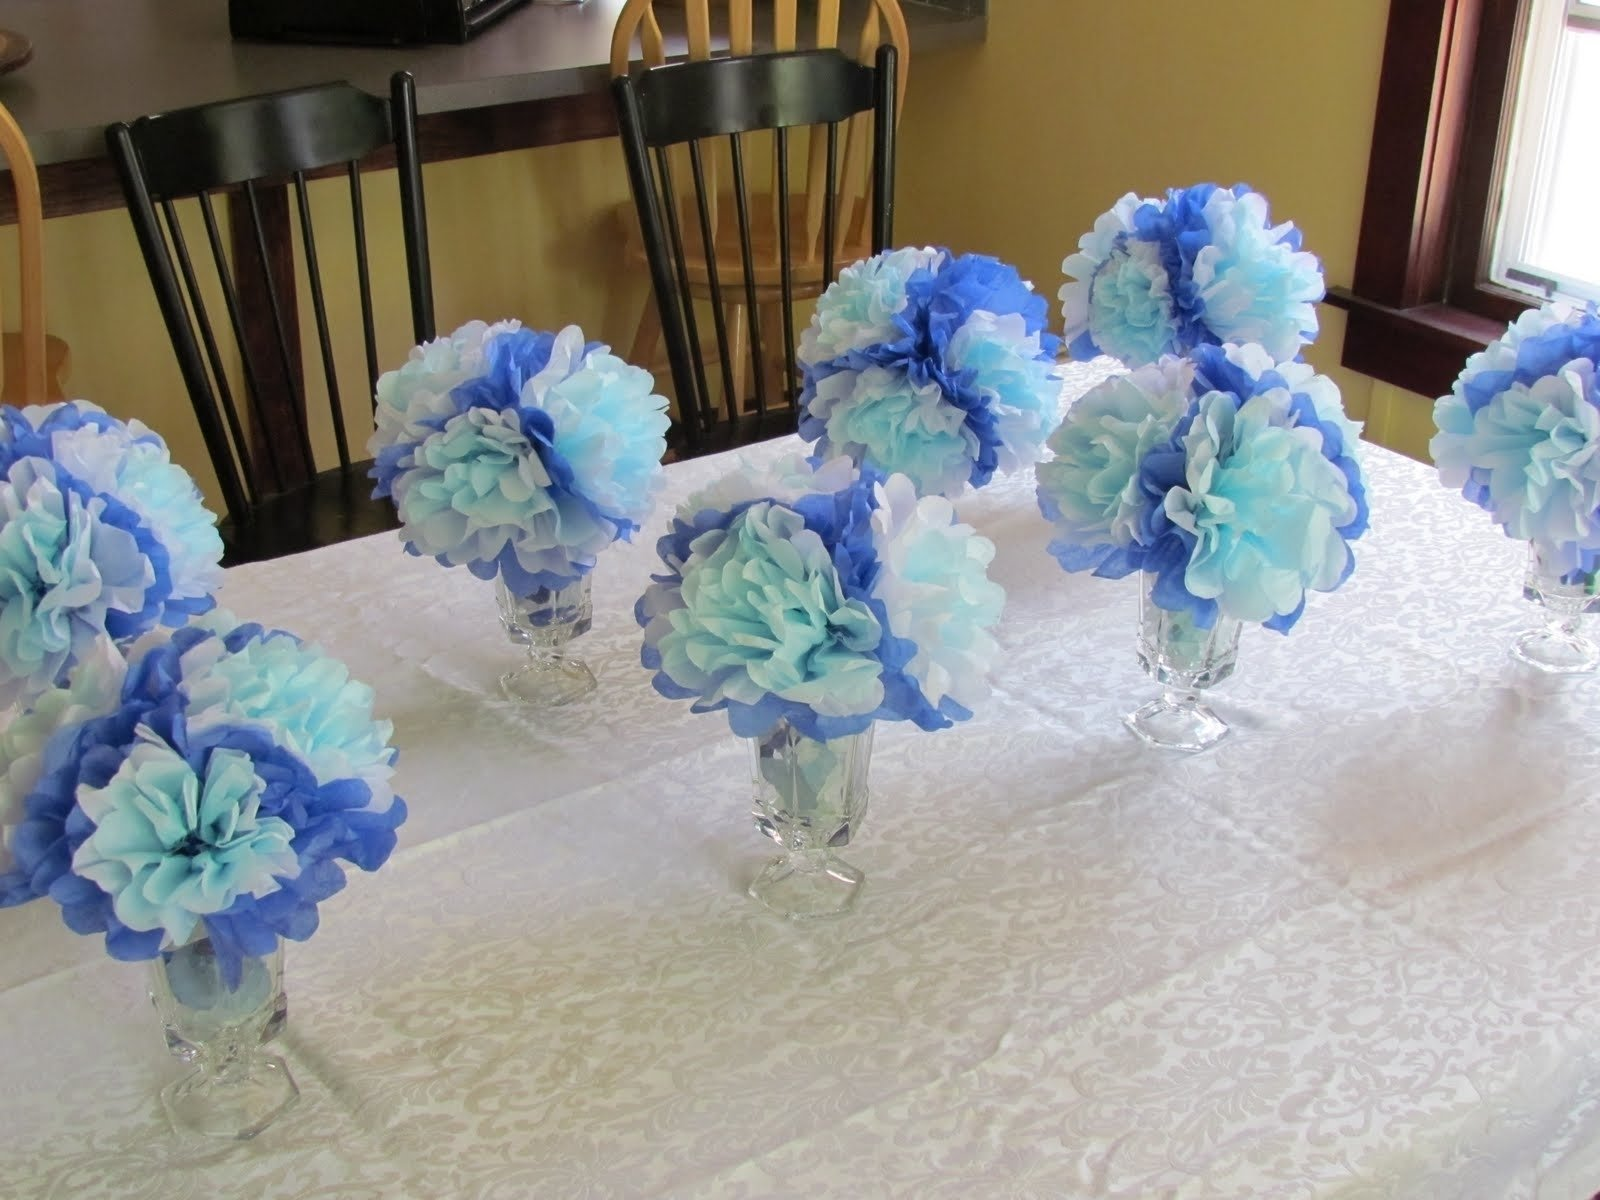 10 Attractive Baby Shower Centerpieces Ideas For Boys cheap baby shower decorations for boy blue elephant baby boy with 1 2020